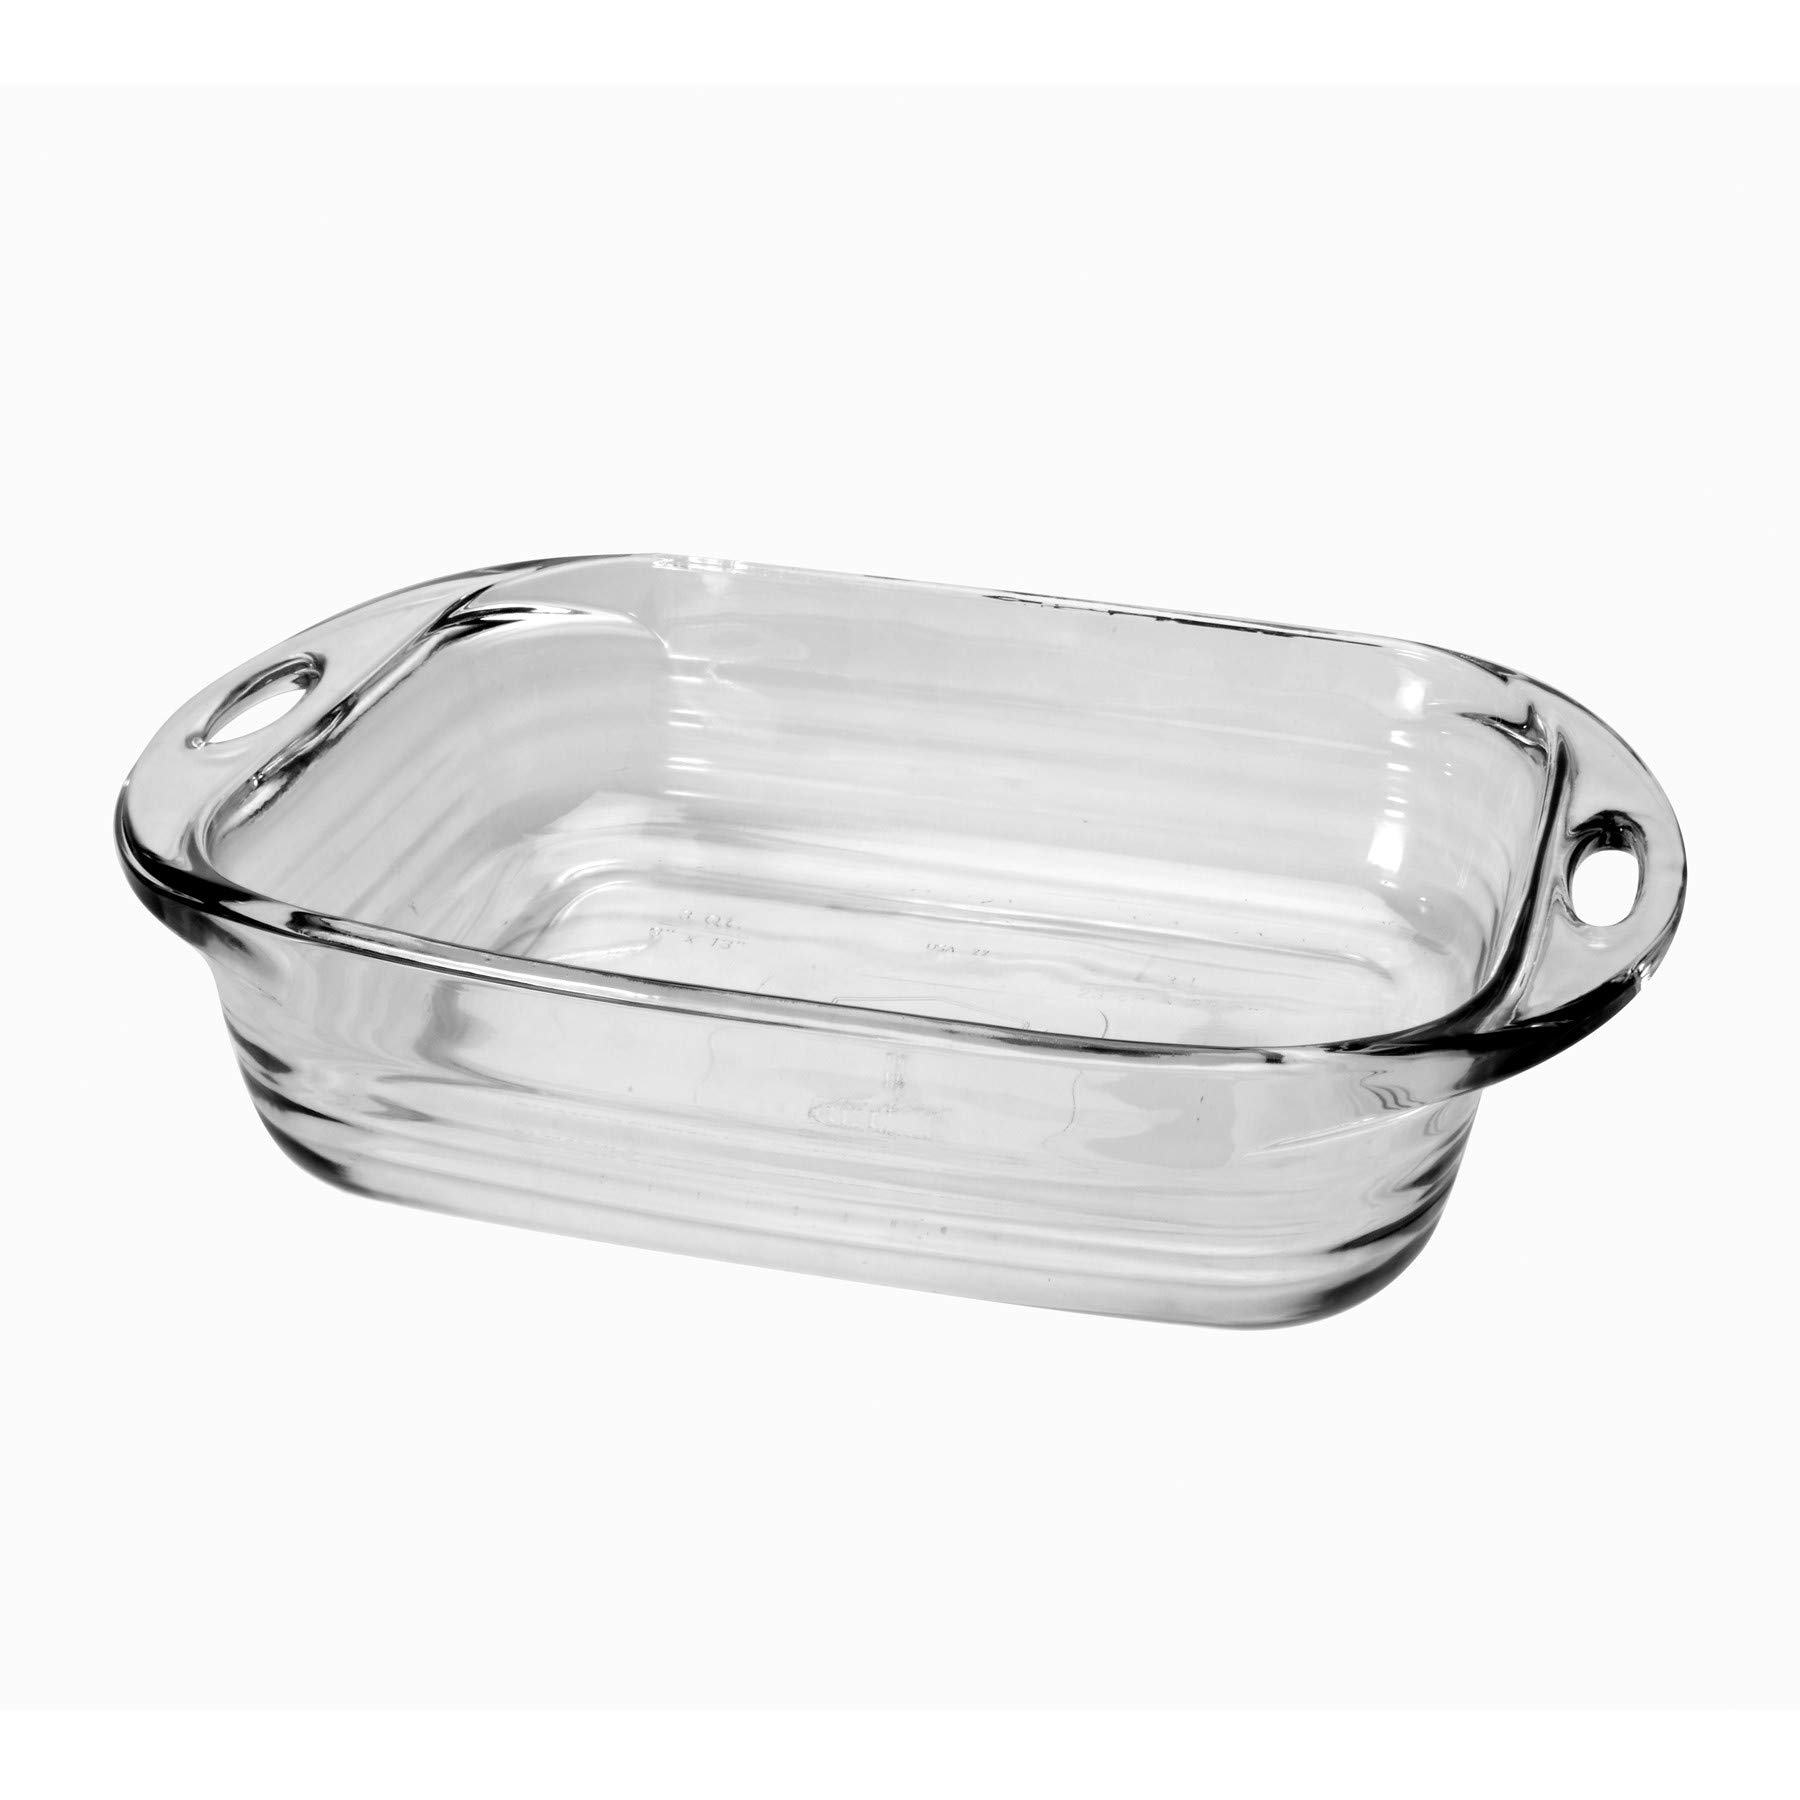 Anchor Hocking Premium 1.5 Quart Loaf Glass Baking Dish with Removable Silicone Grips,Teal, Set of 2 by Anchor Hocking (Image #3)